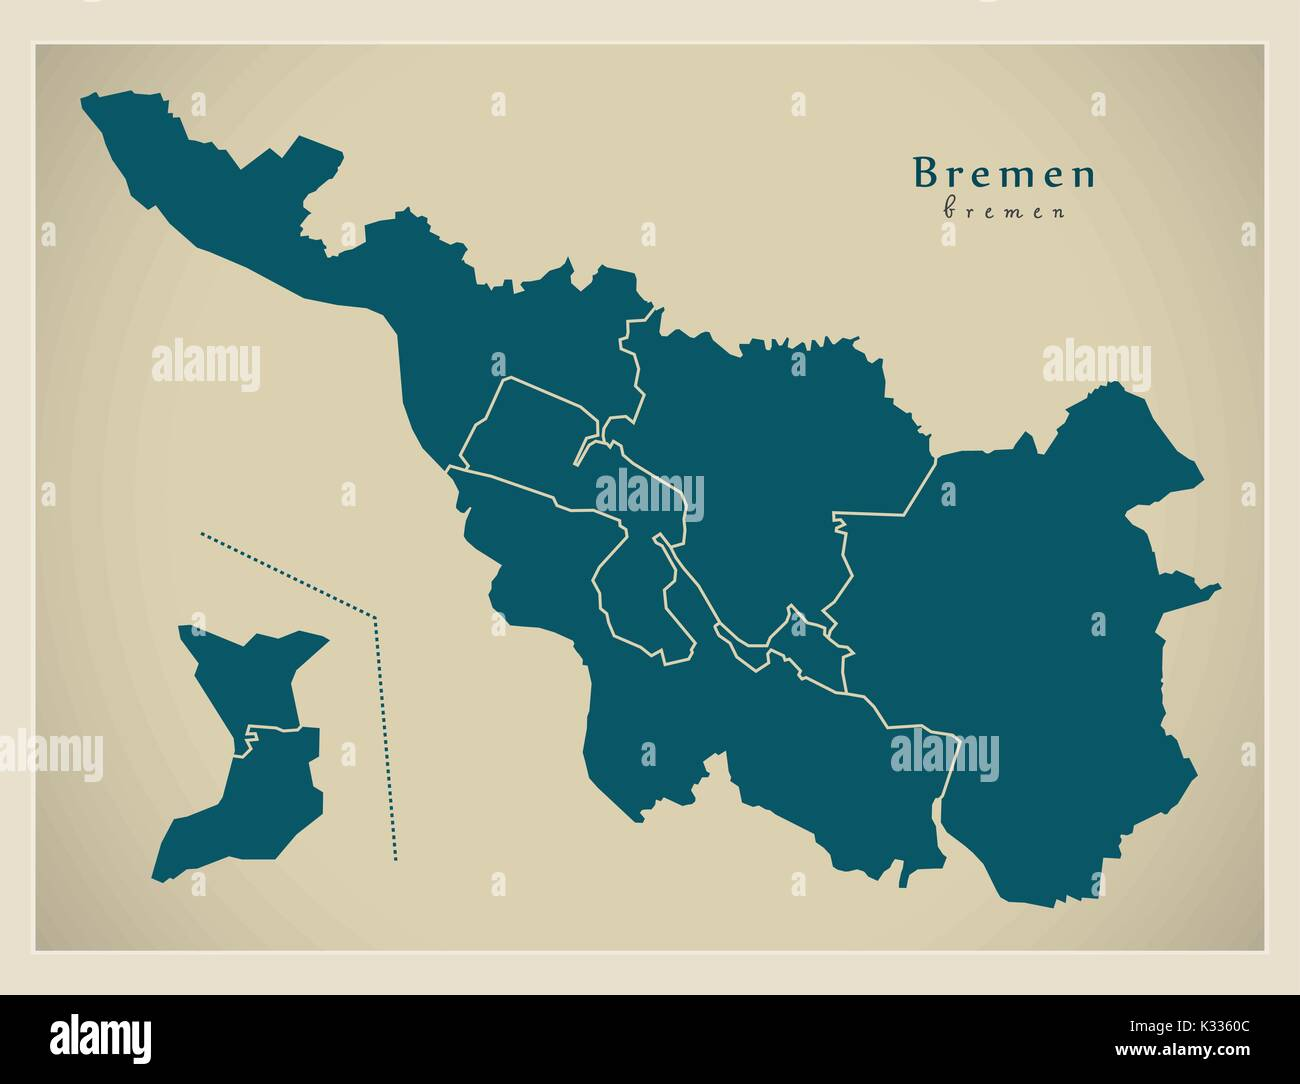 modern city map bremen city of germany with boroughs de stock image